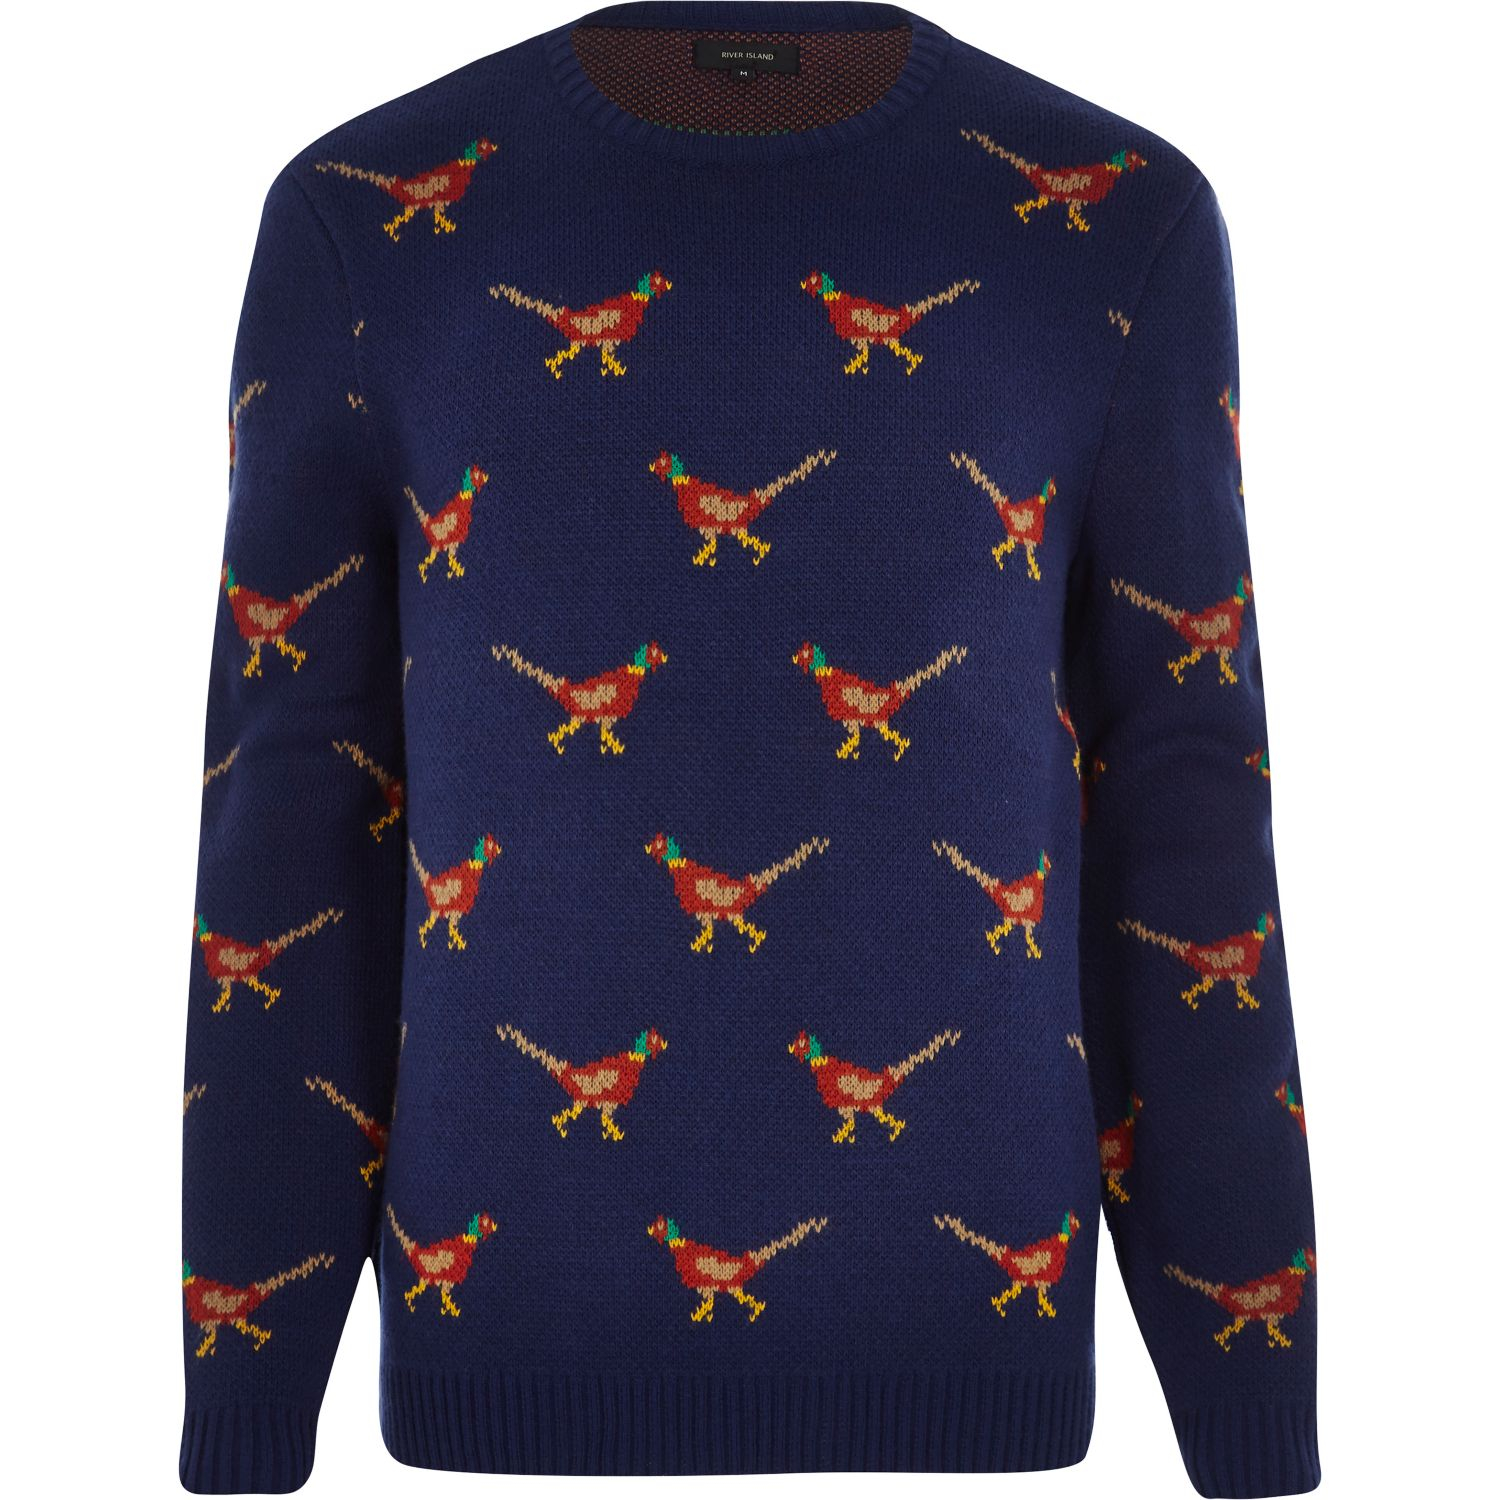 24892221f3a Mens Christmas Jumpers River Island | woestenhoeve